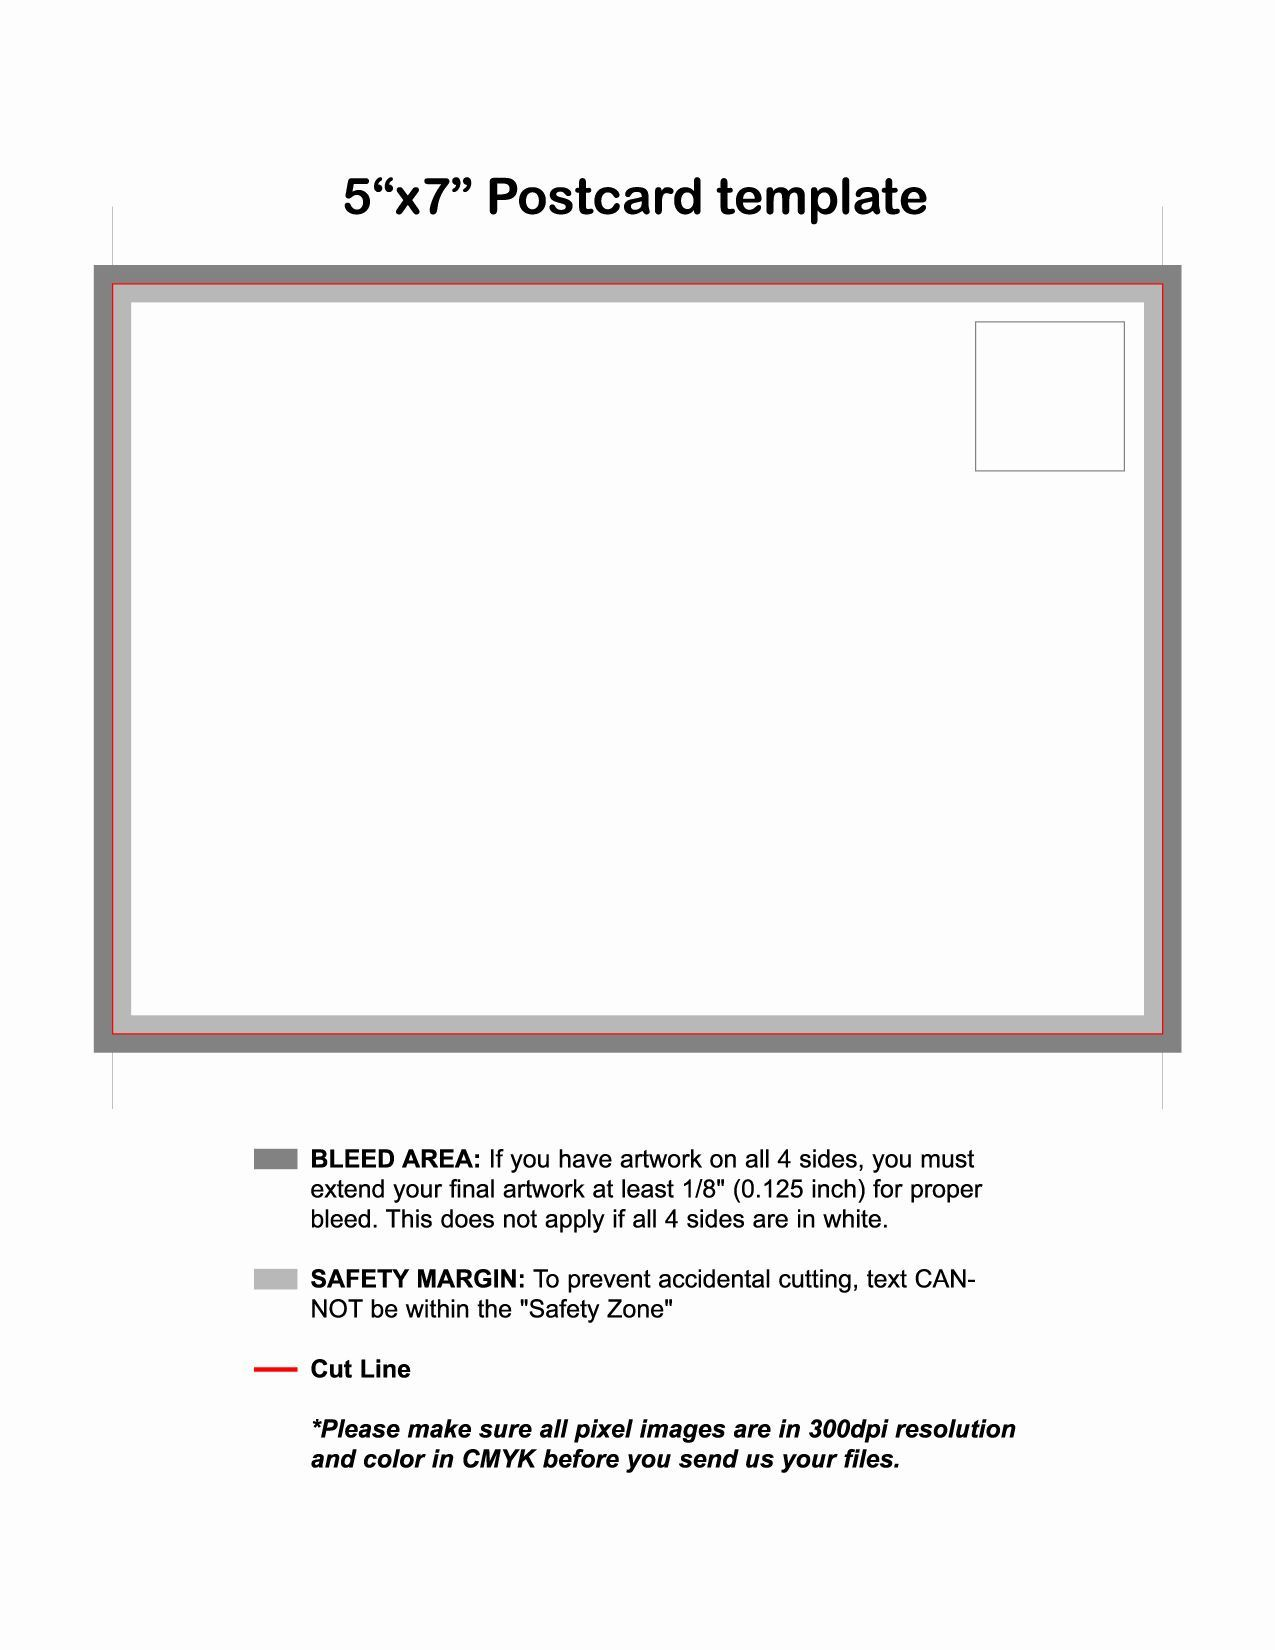 007 Unique 5 X 7 Postcard Template Microsoft Word High Definition Full